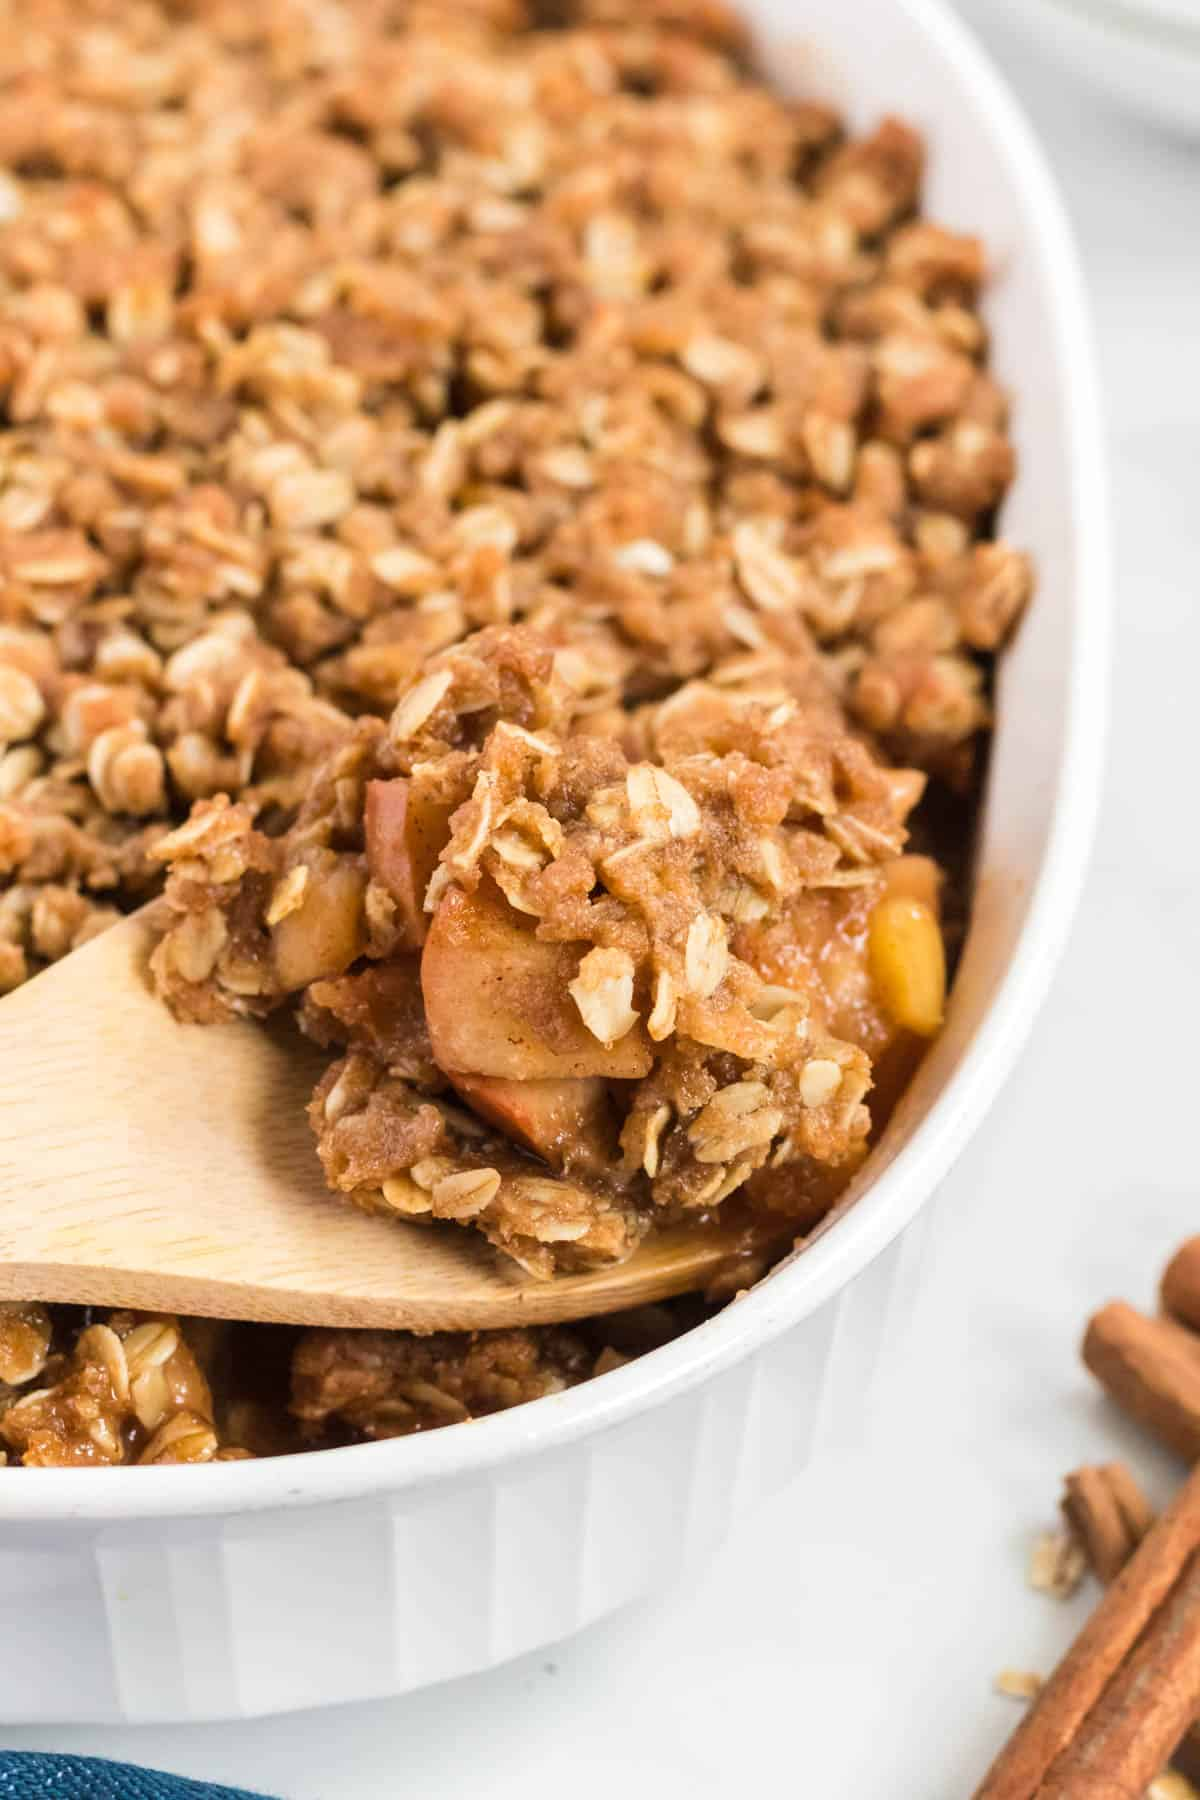 a wooden spoon scooping apple crisp from the pan